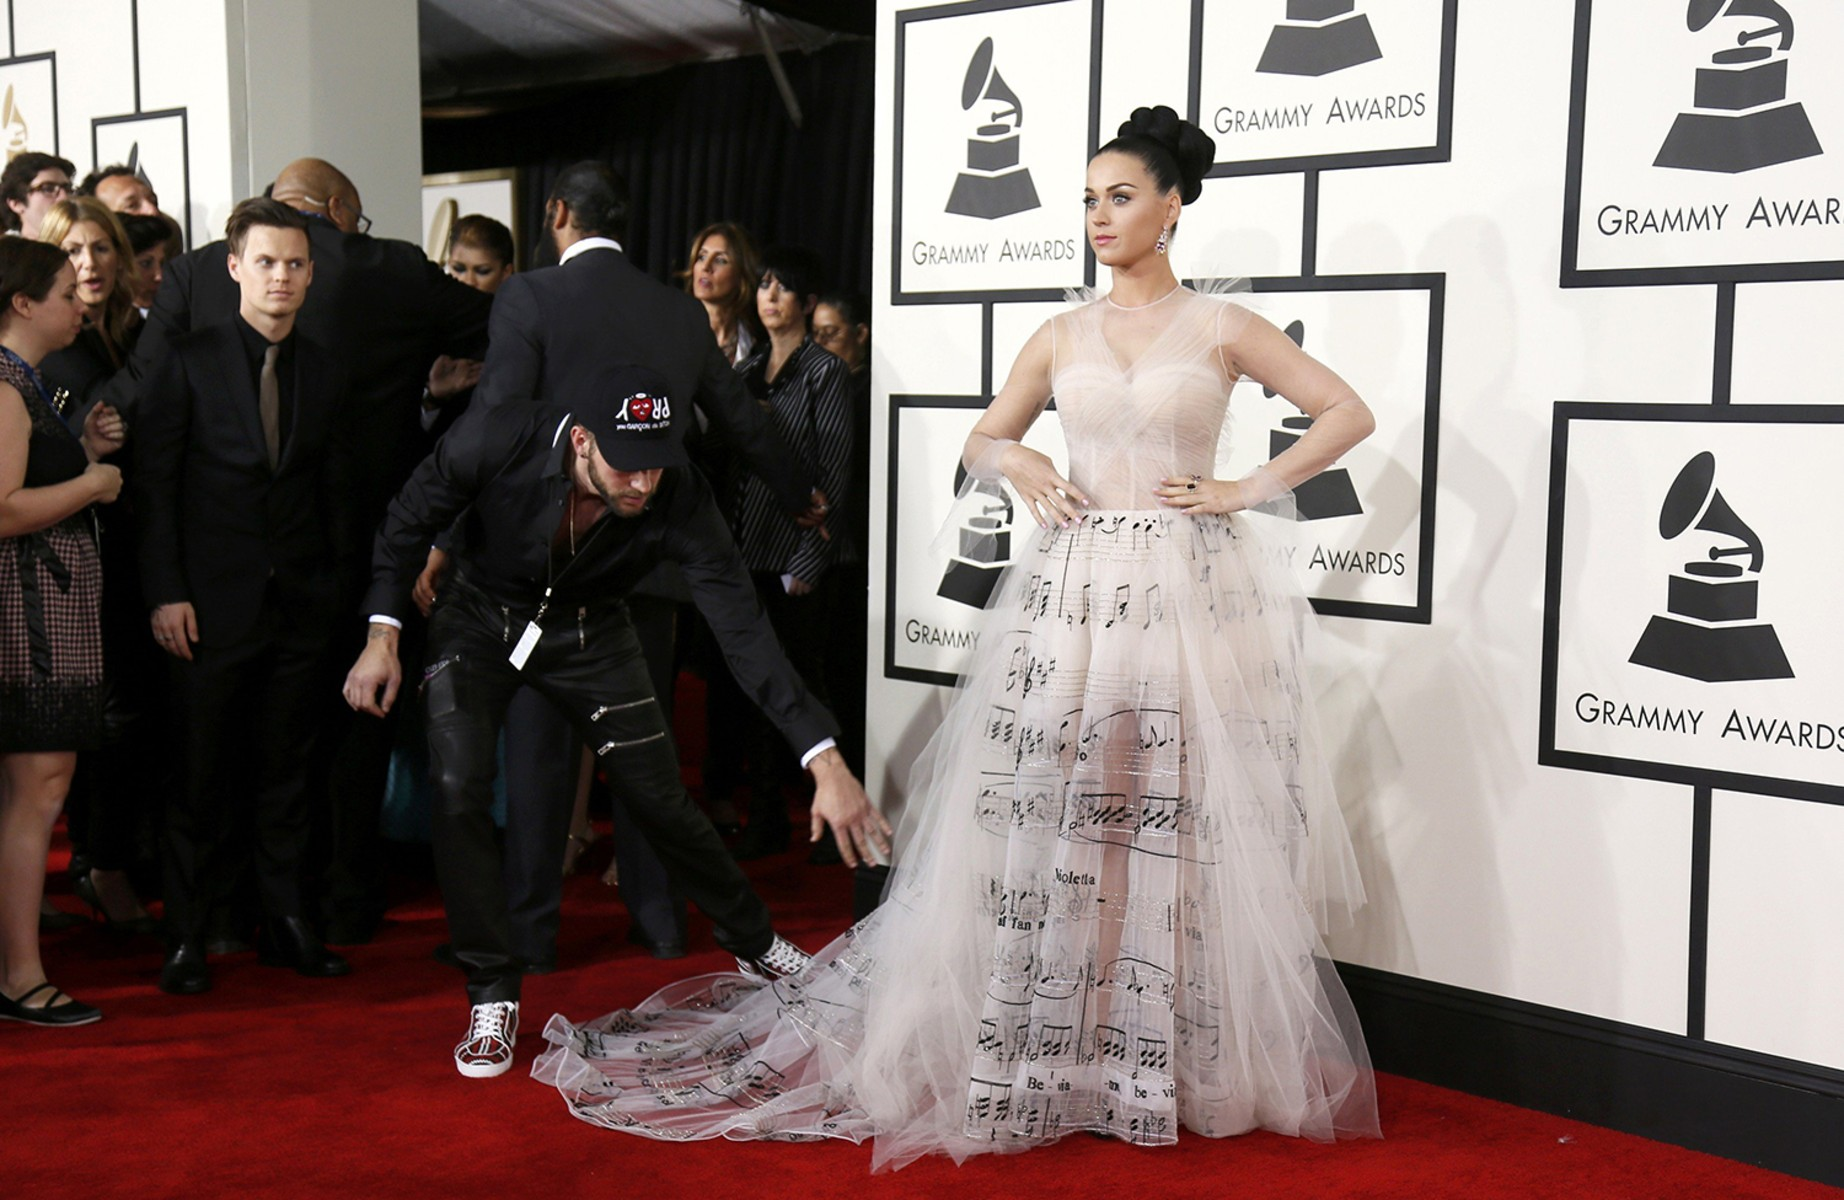 Grammy: 2014 Grammy Awards Red Carpet